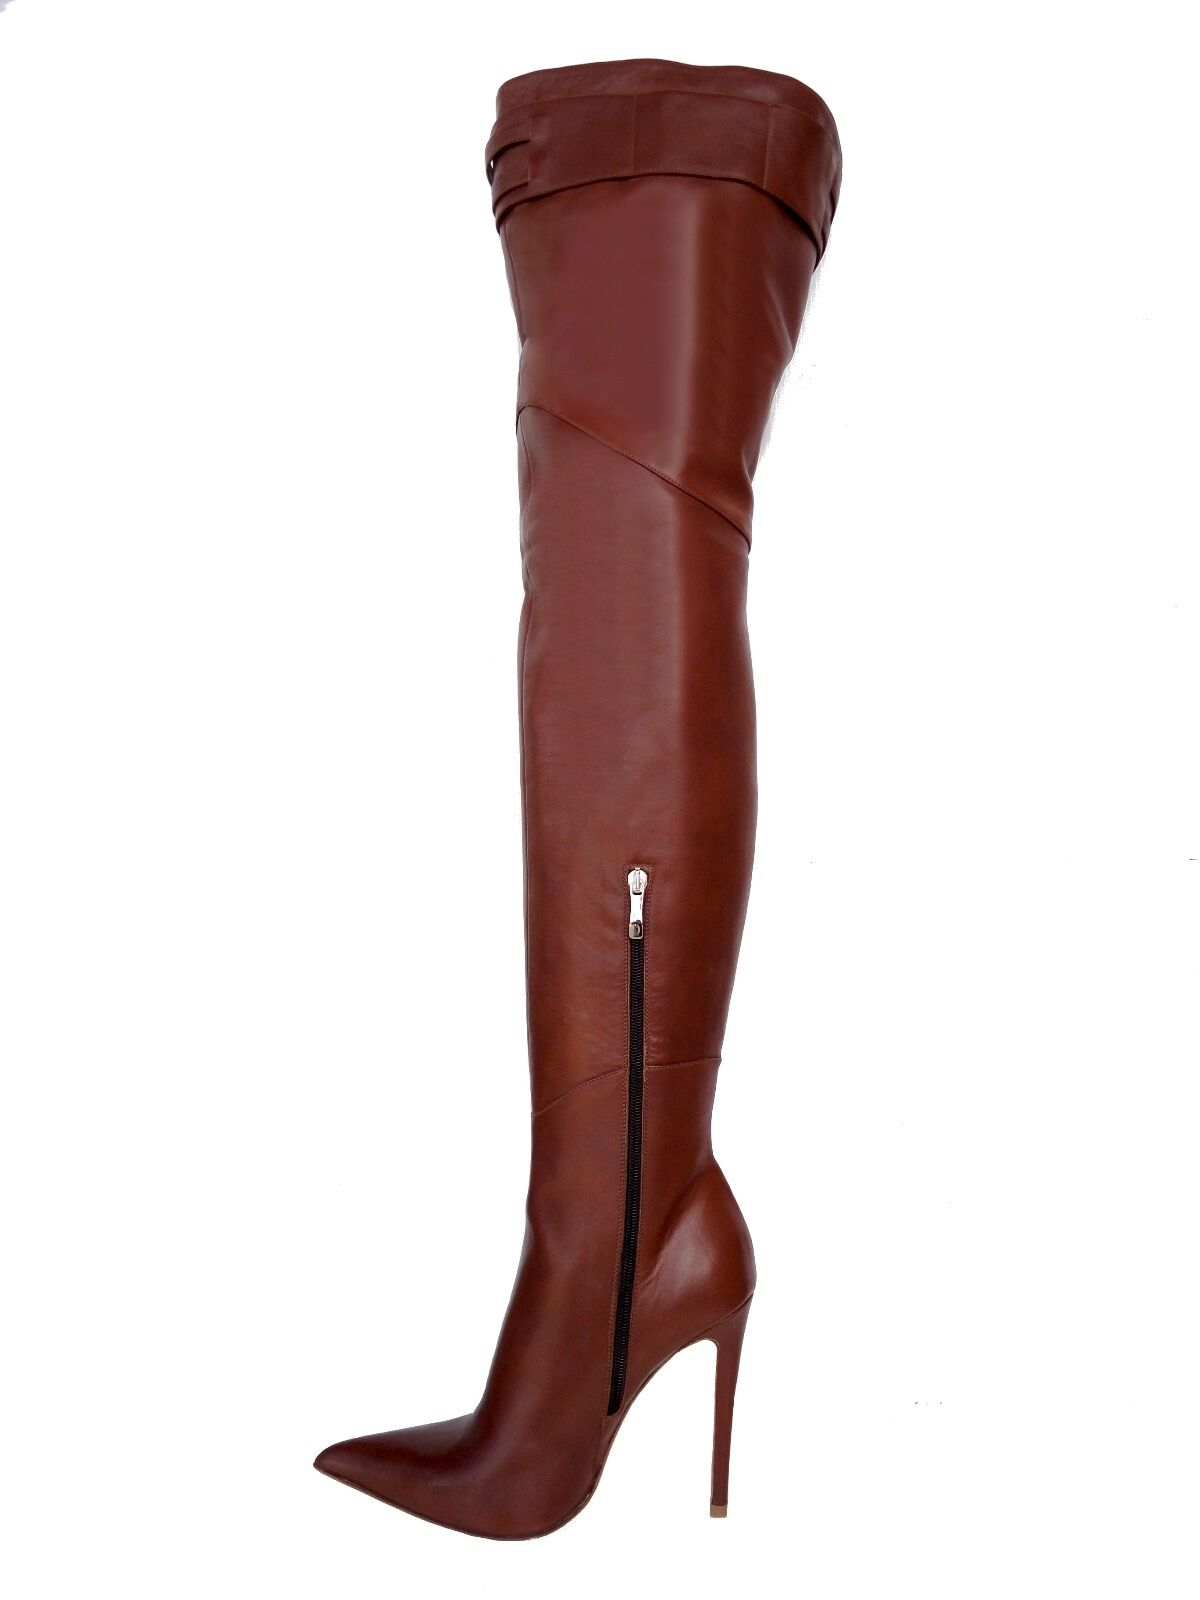 CQ Couture Custom Over the Knee Boots Stiefel Boots Gold